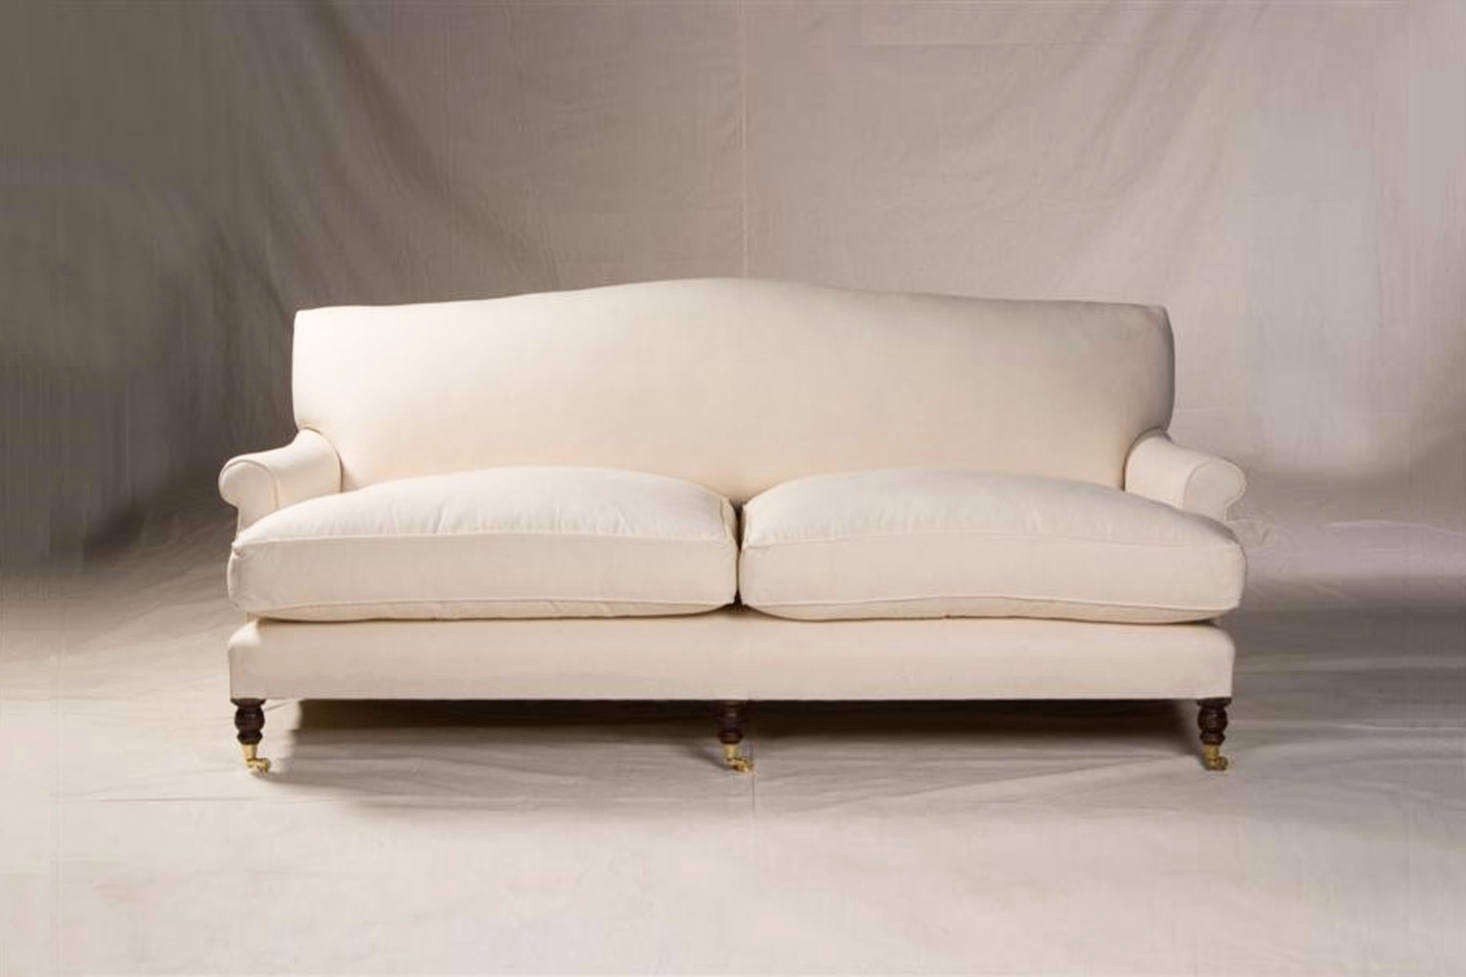 The George Sherlock sofa is the exemplar English roll arm sofa. Shown here is the Extended Mac Sofa